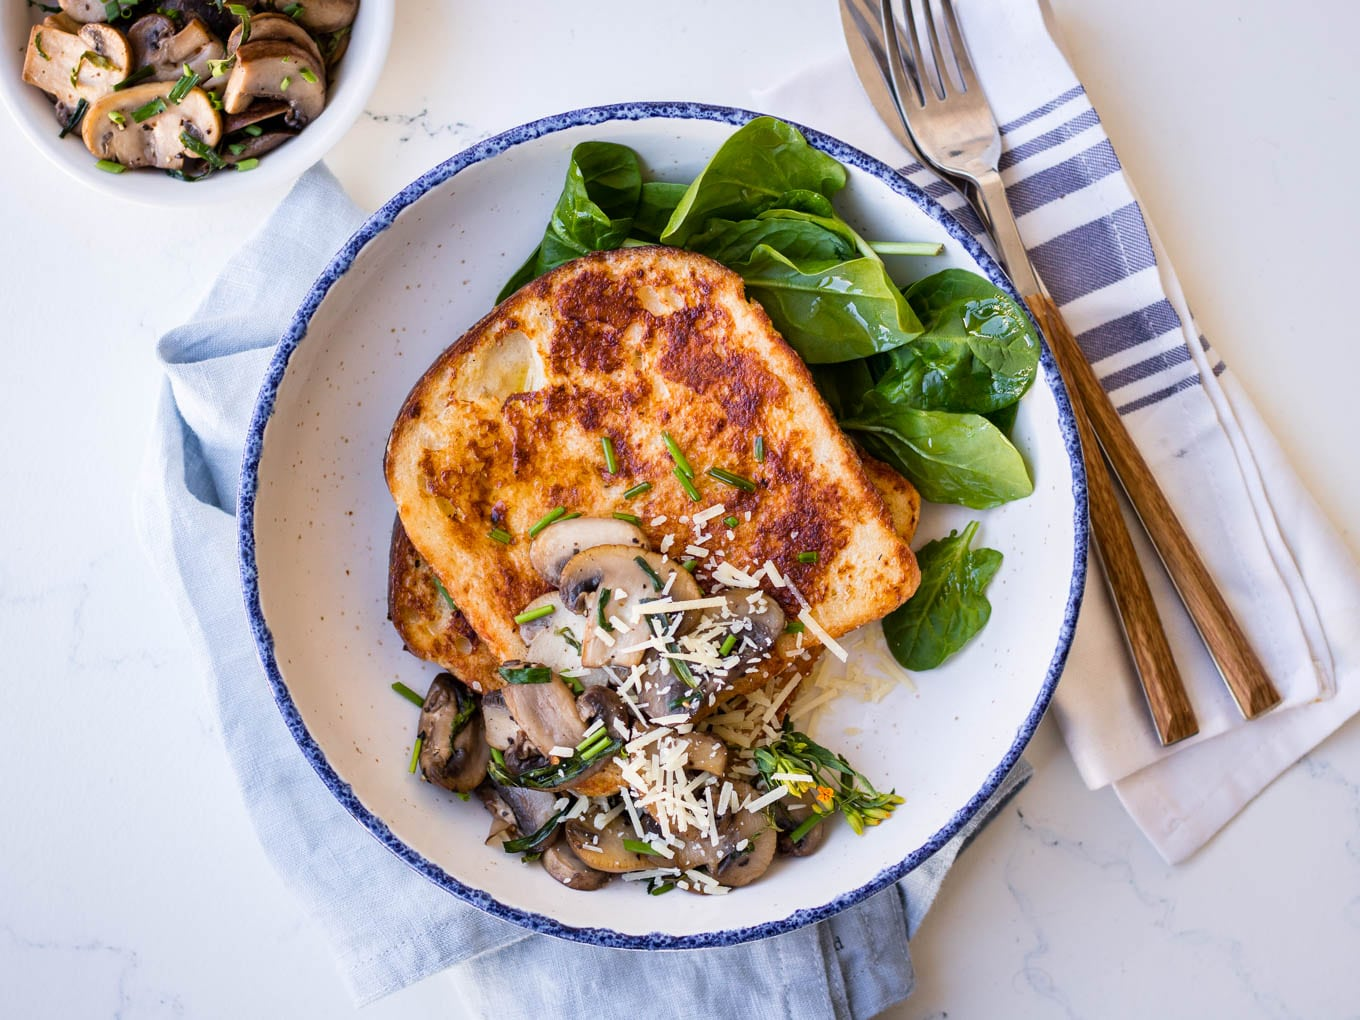 Savoury french toast with mushrooms and grated parmesan, white bowl